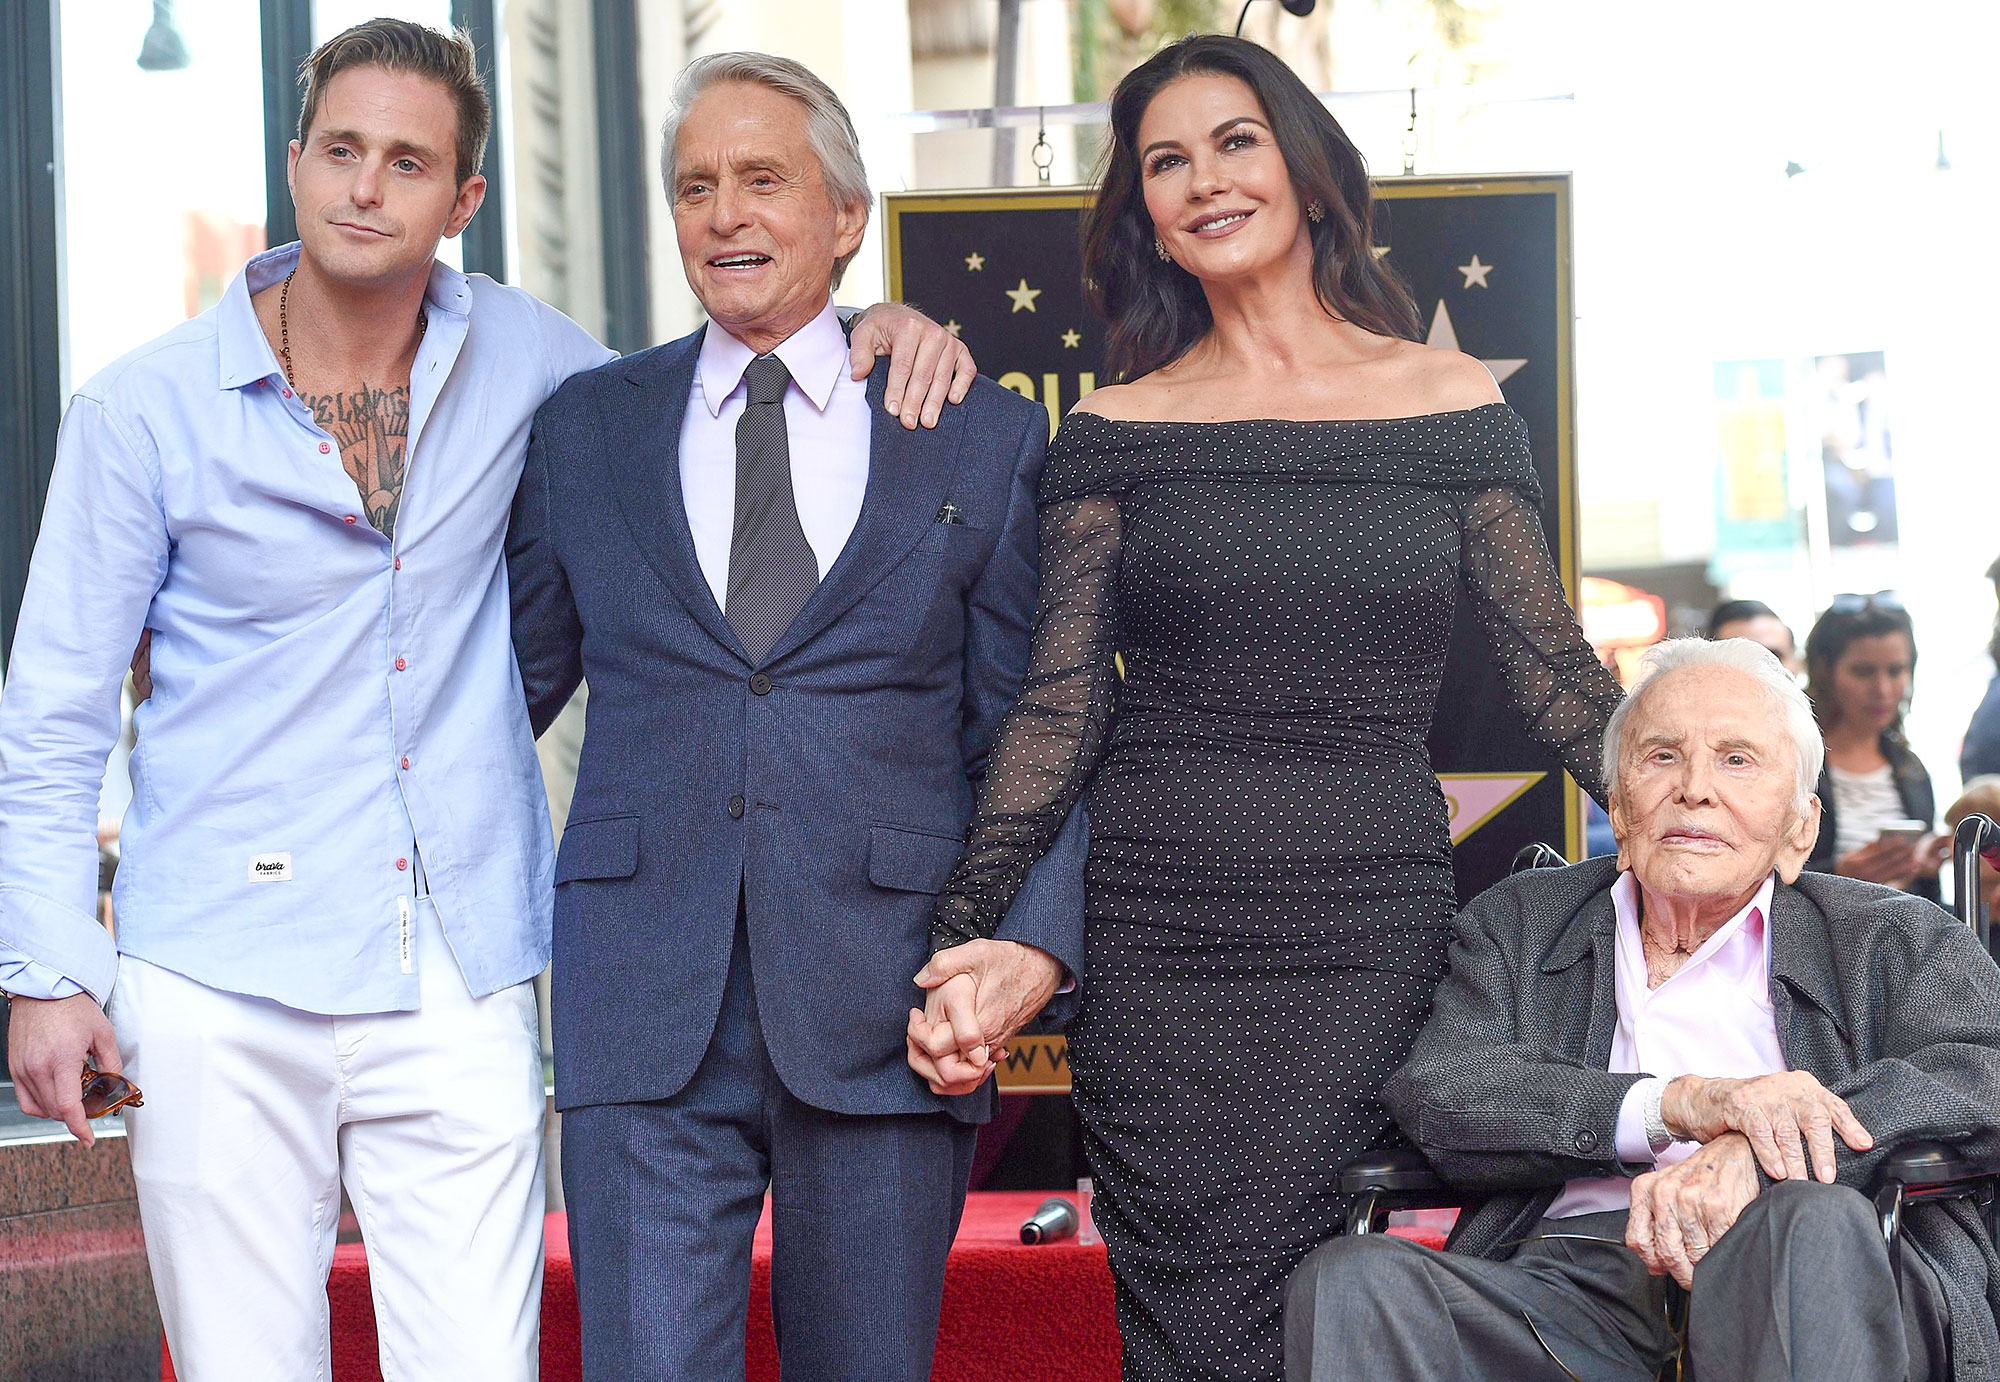 Michael Douglas Honored with a Star on the Hollywood Walk of Fame, Los Angeles, USA - 06 Nov 2018